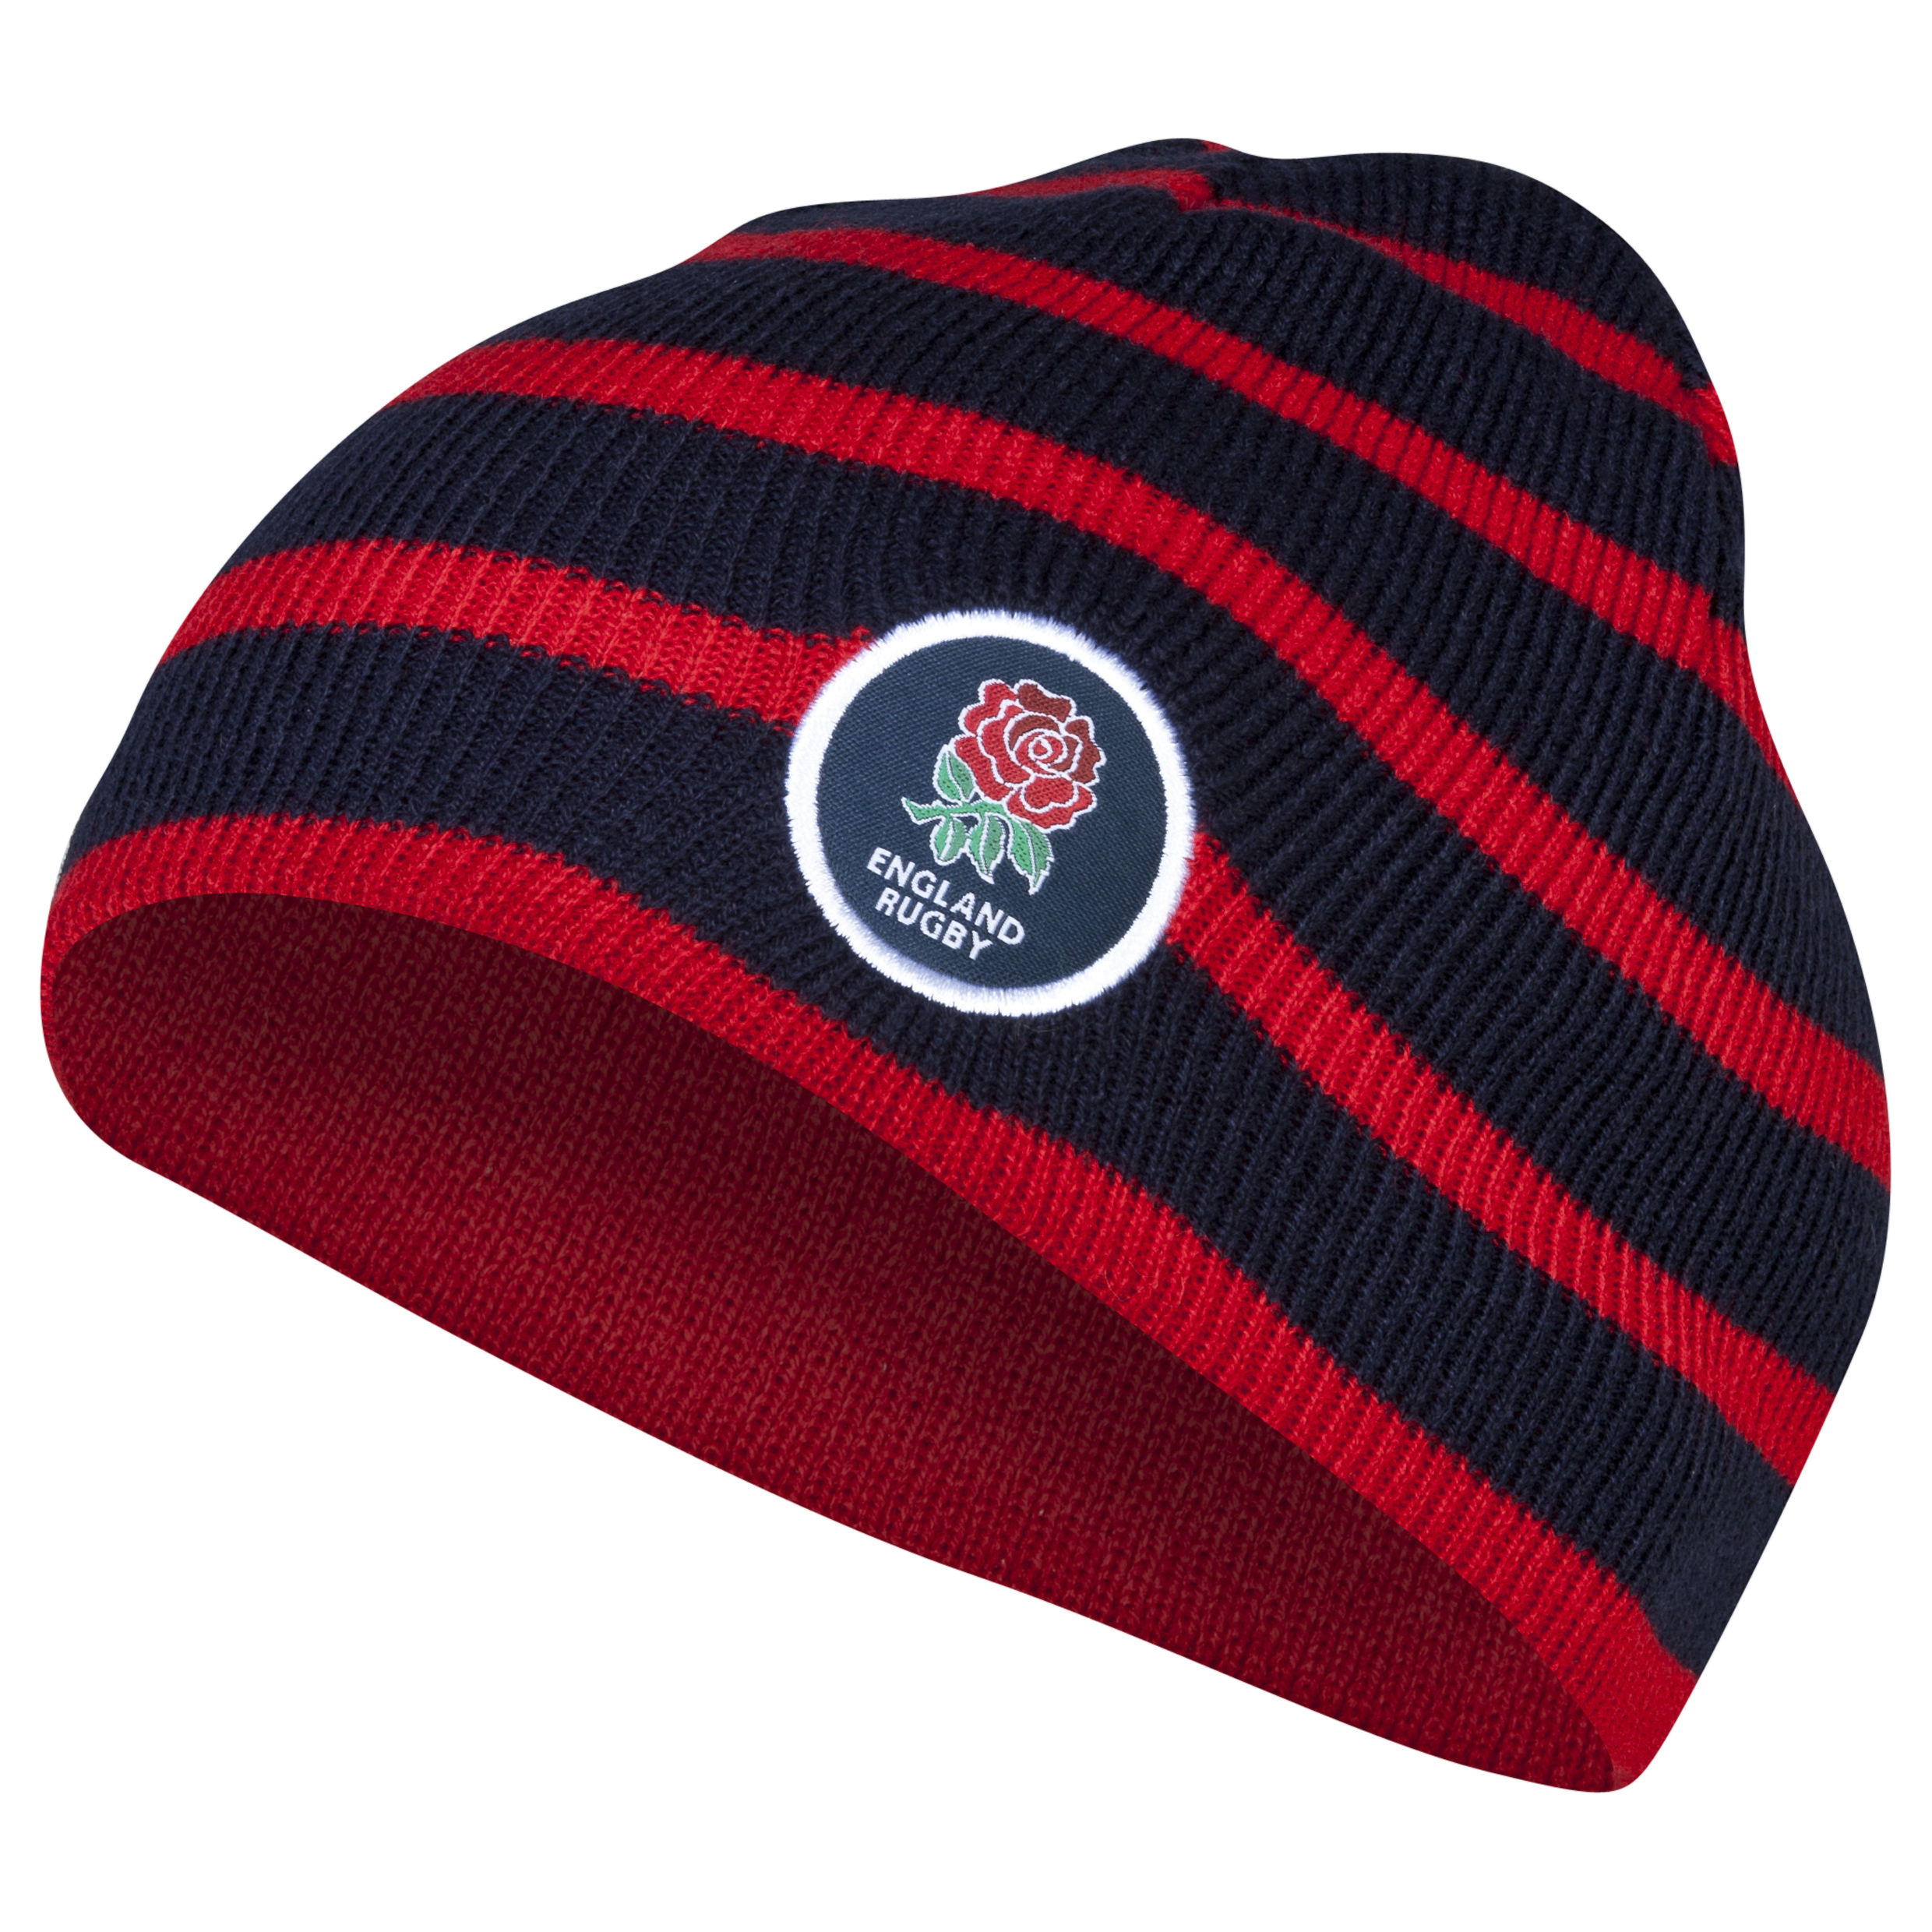 England Reversible Beanie - Boys - Red